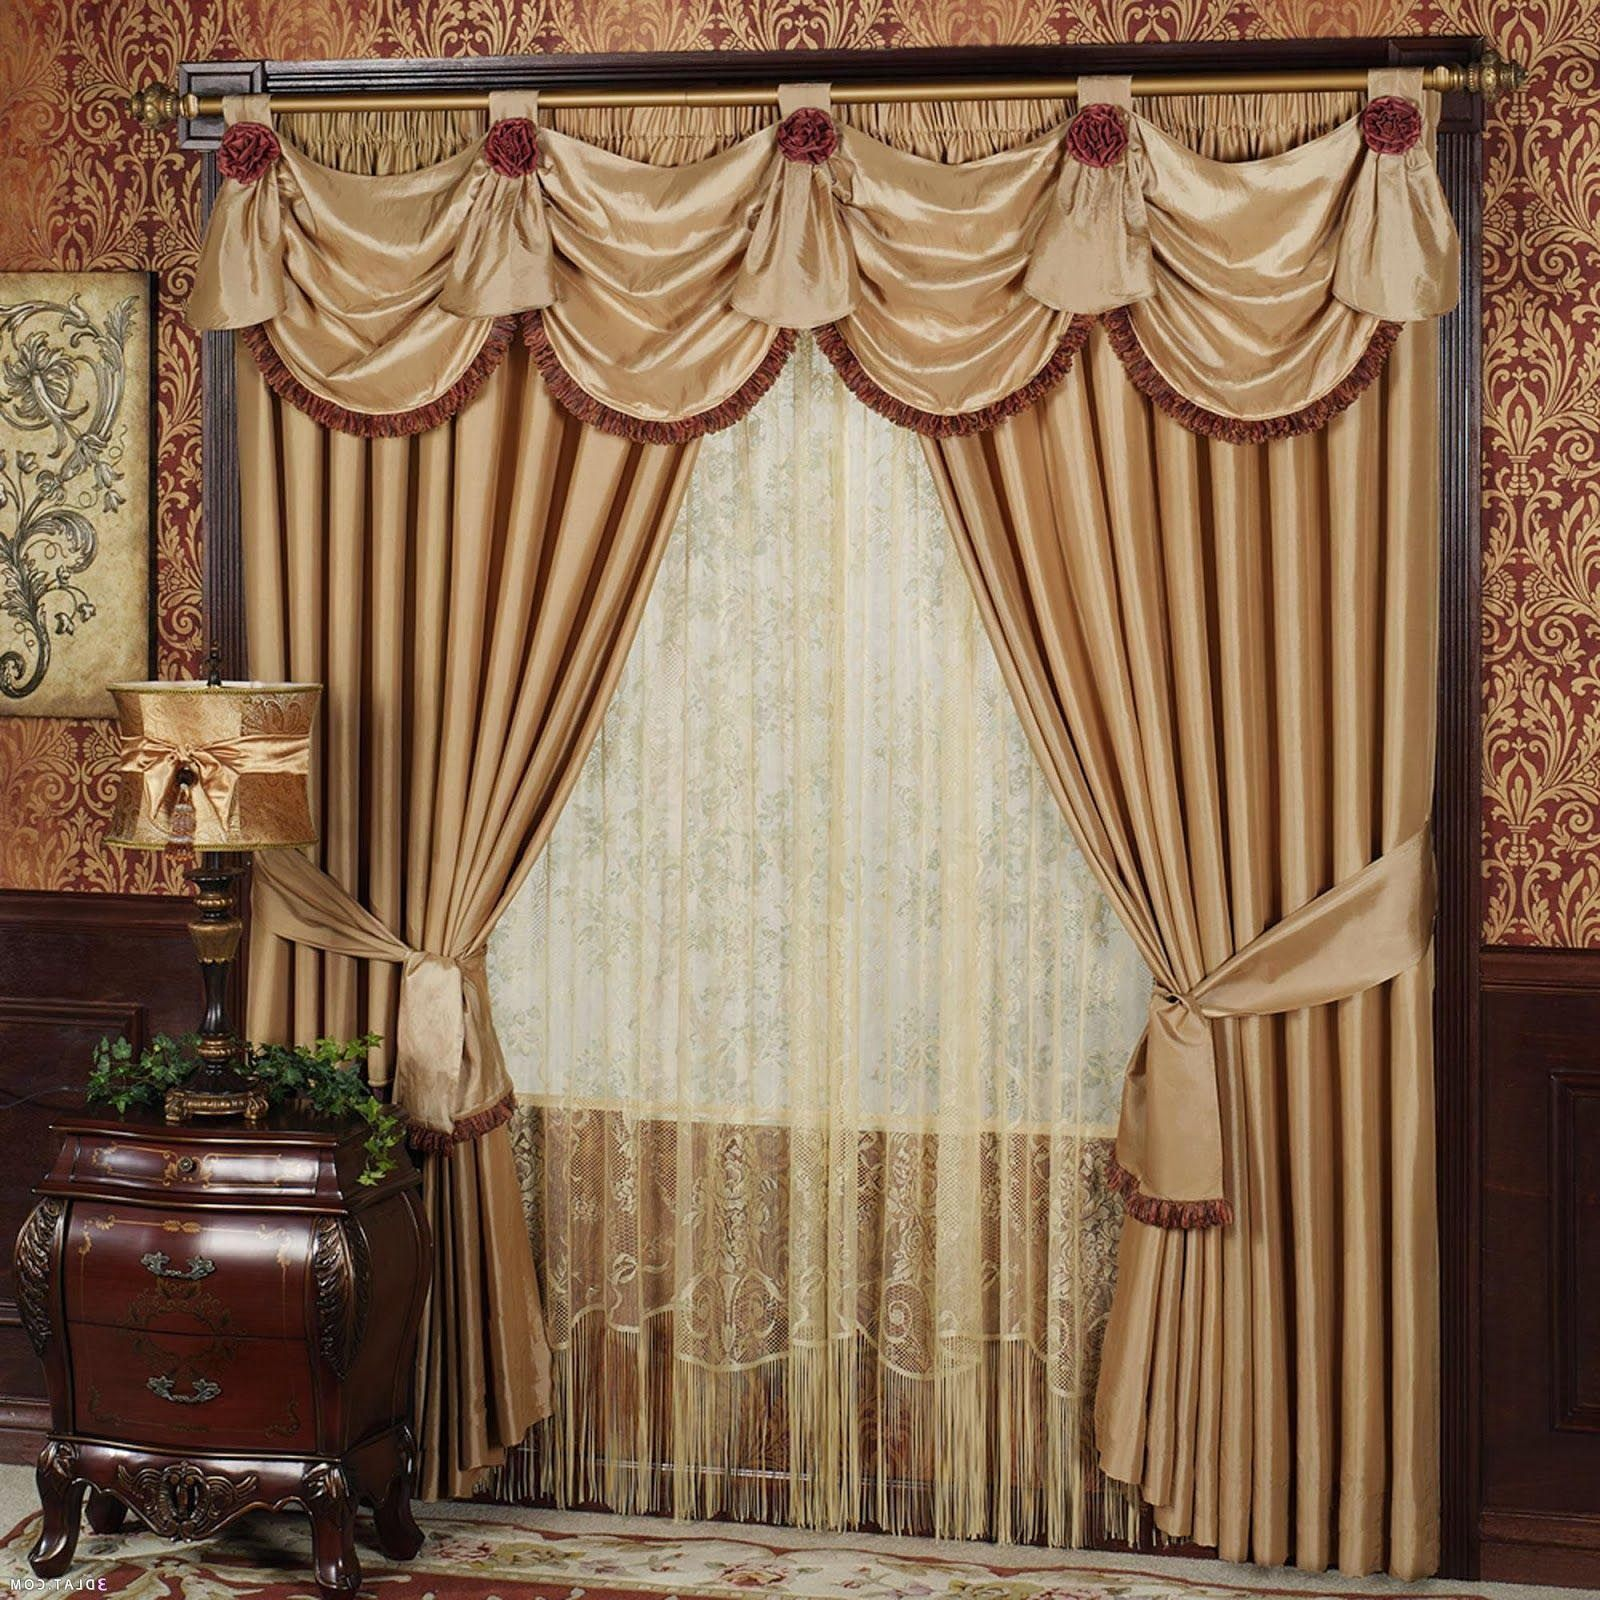 Living Room Curtain Design Fair Living Room Drapes With Valances  Valances  Pinterest  Valance Design Inspiration